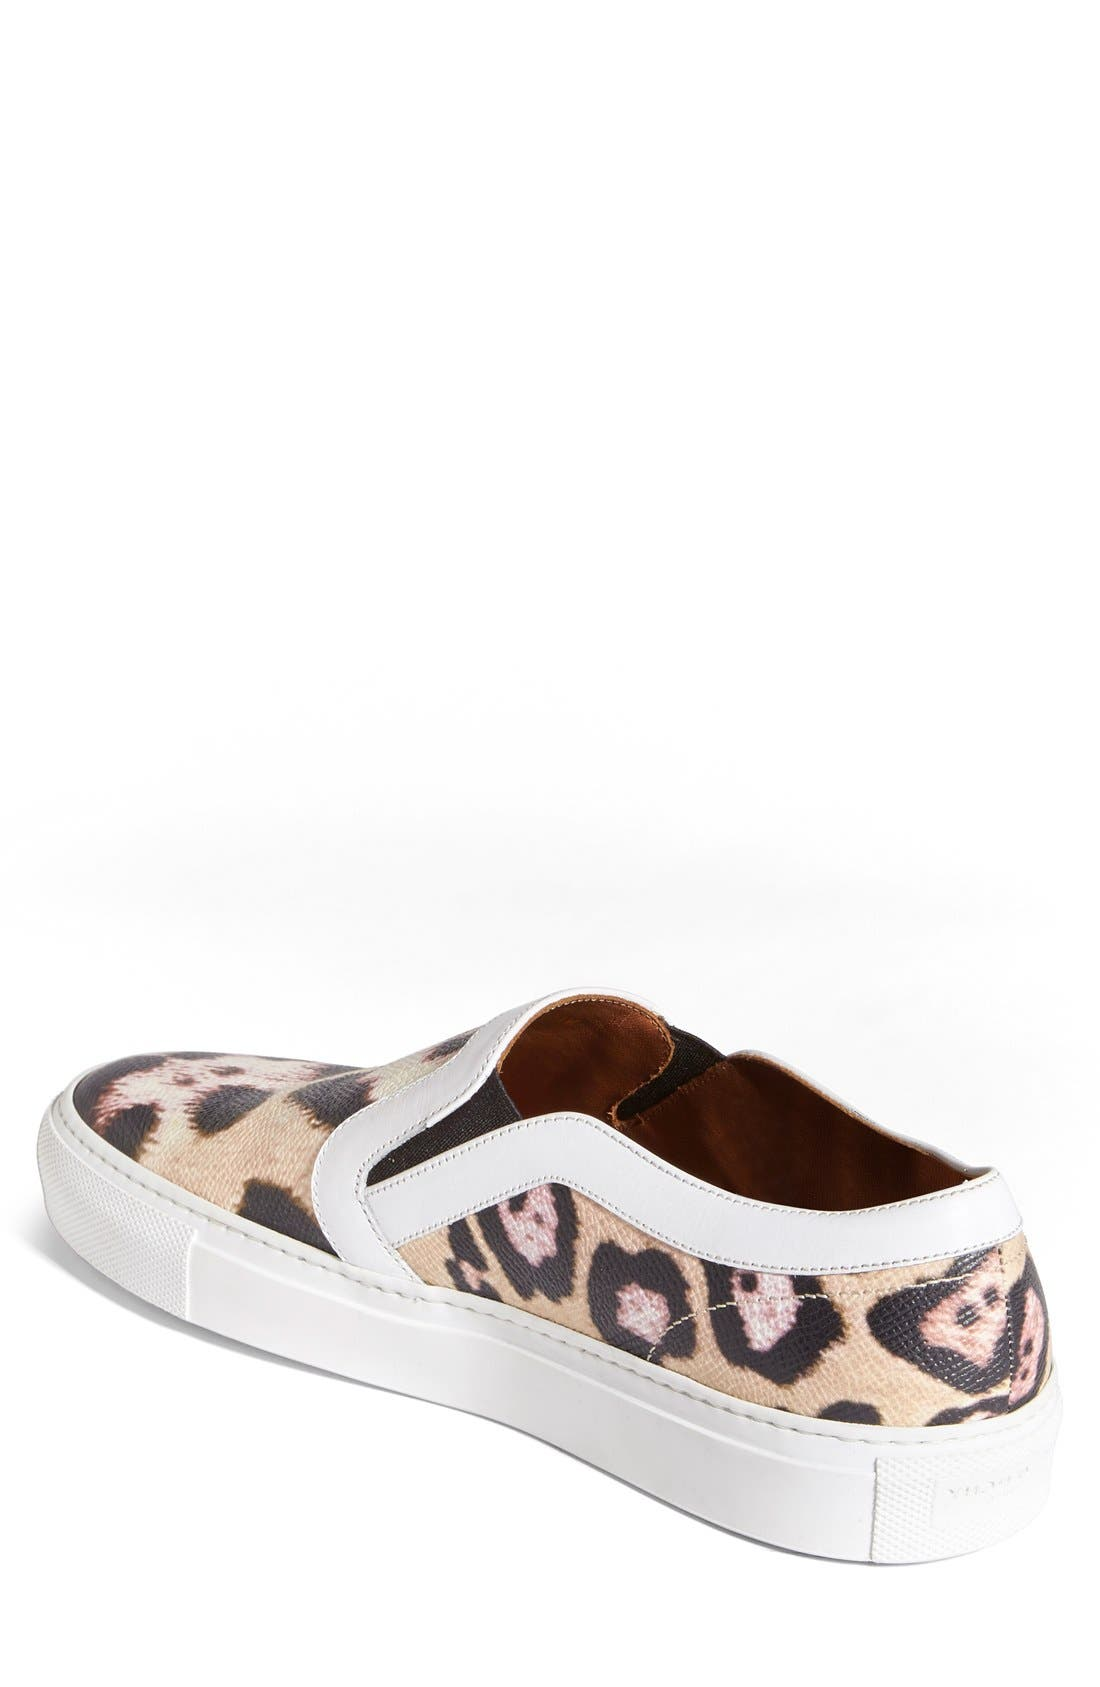 Alternate Image 2  - Givenchy Leopard Print Skate Slip-On Sneaker (Women)